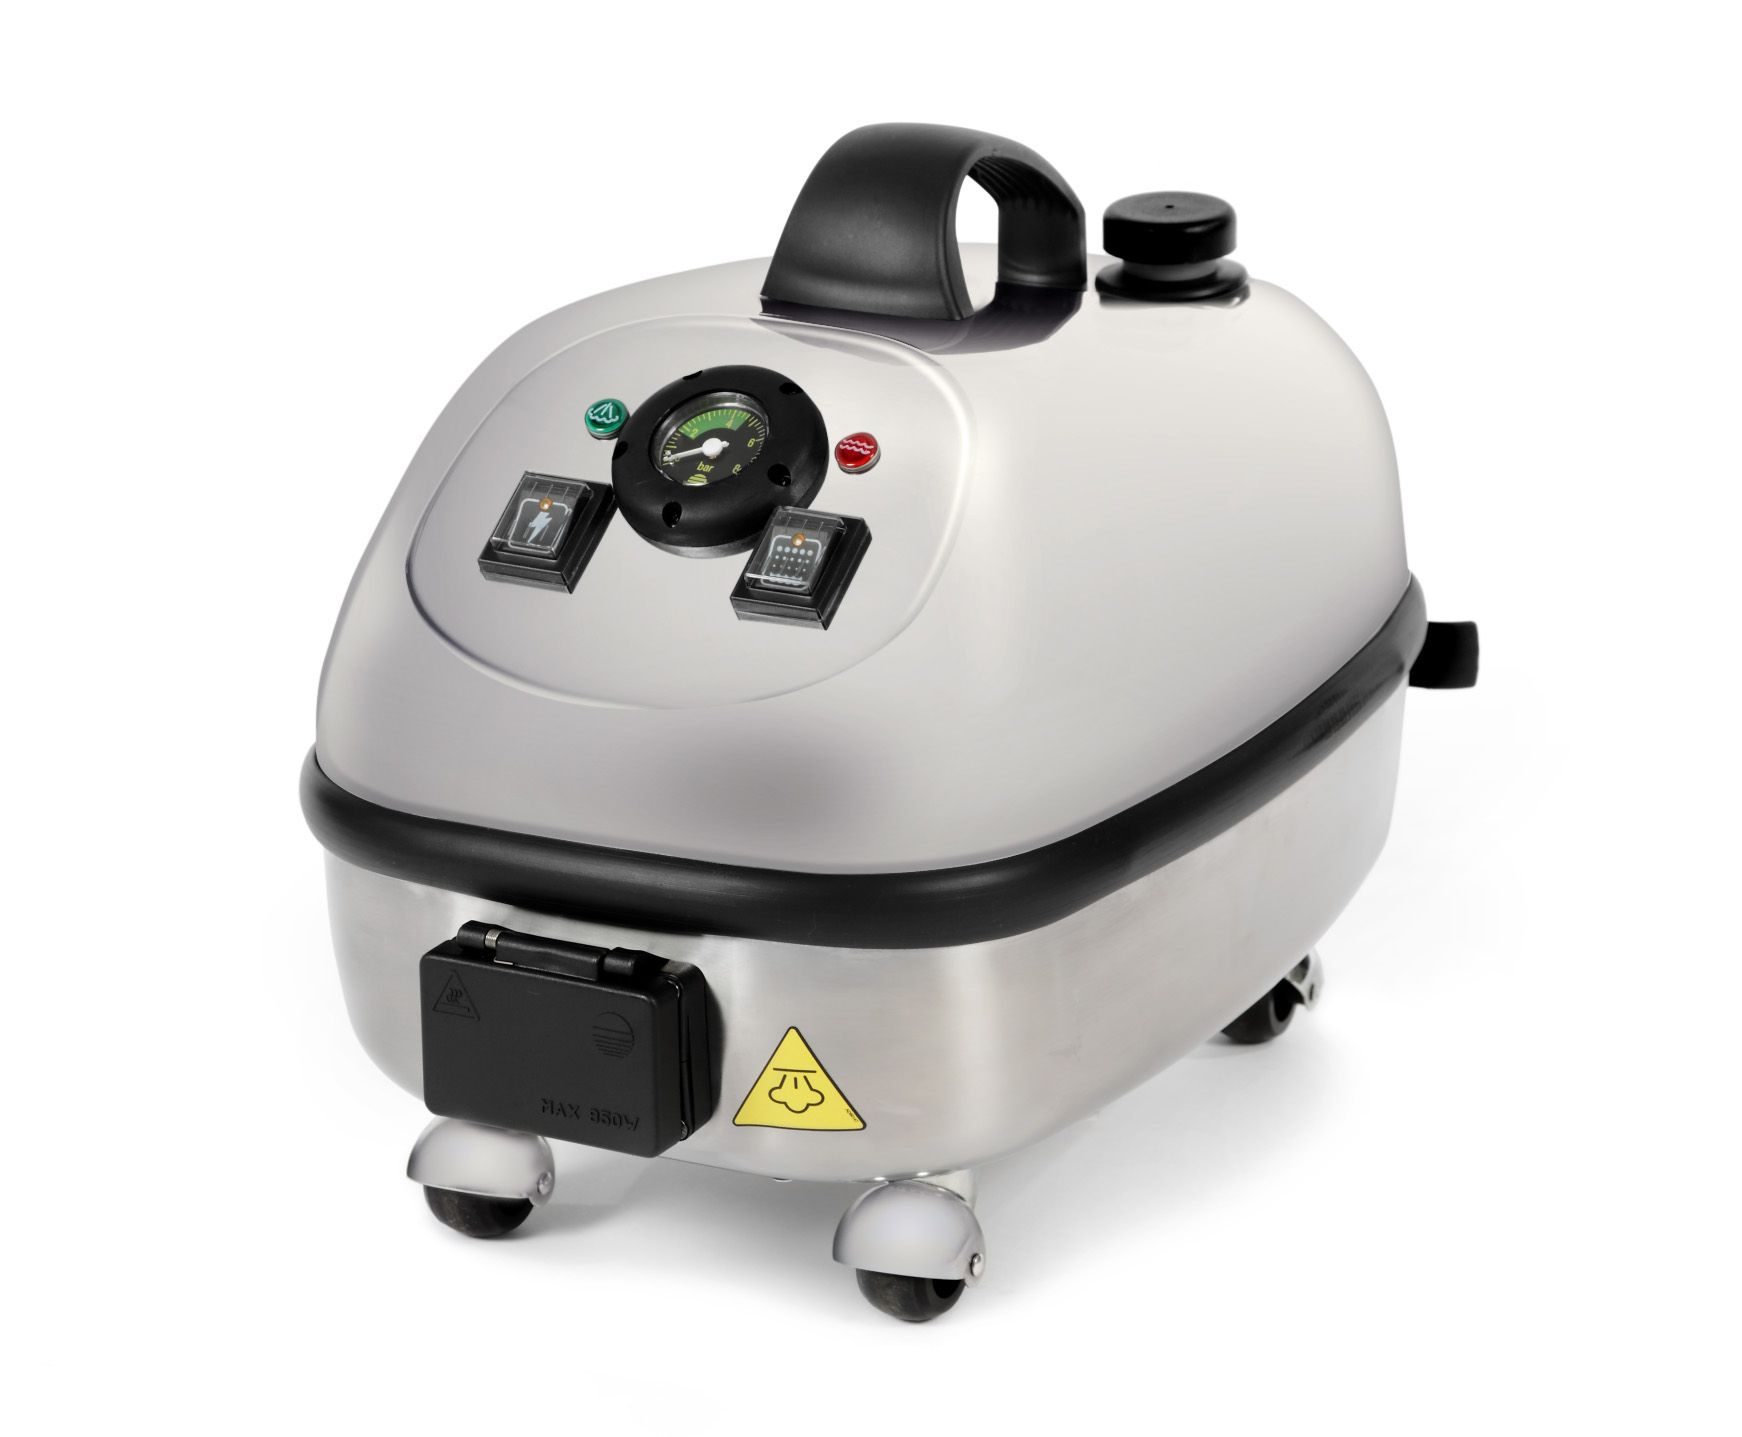 daimer releases steam cleaner for pest control in restaurant